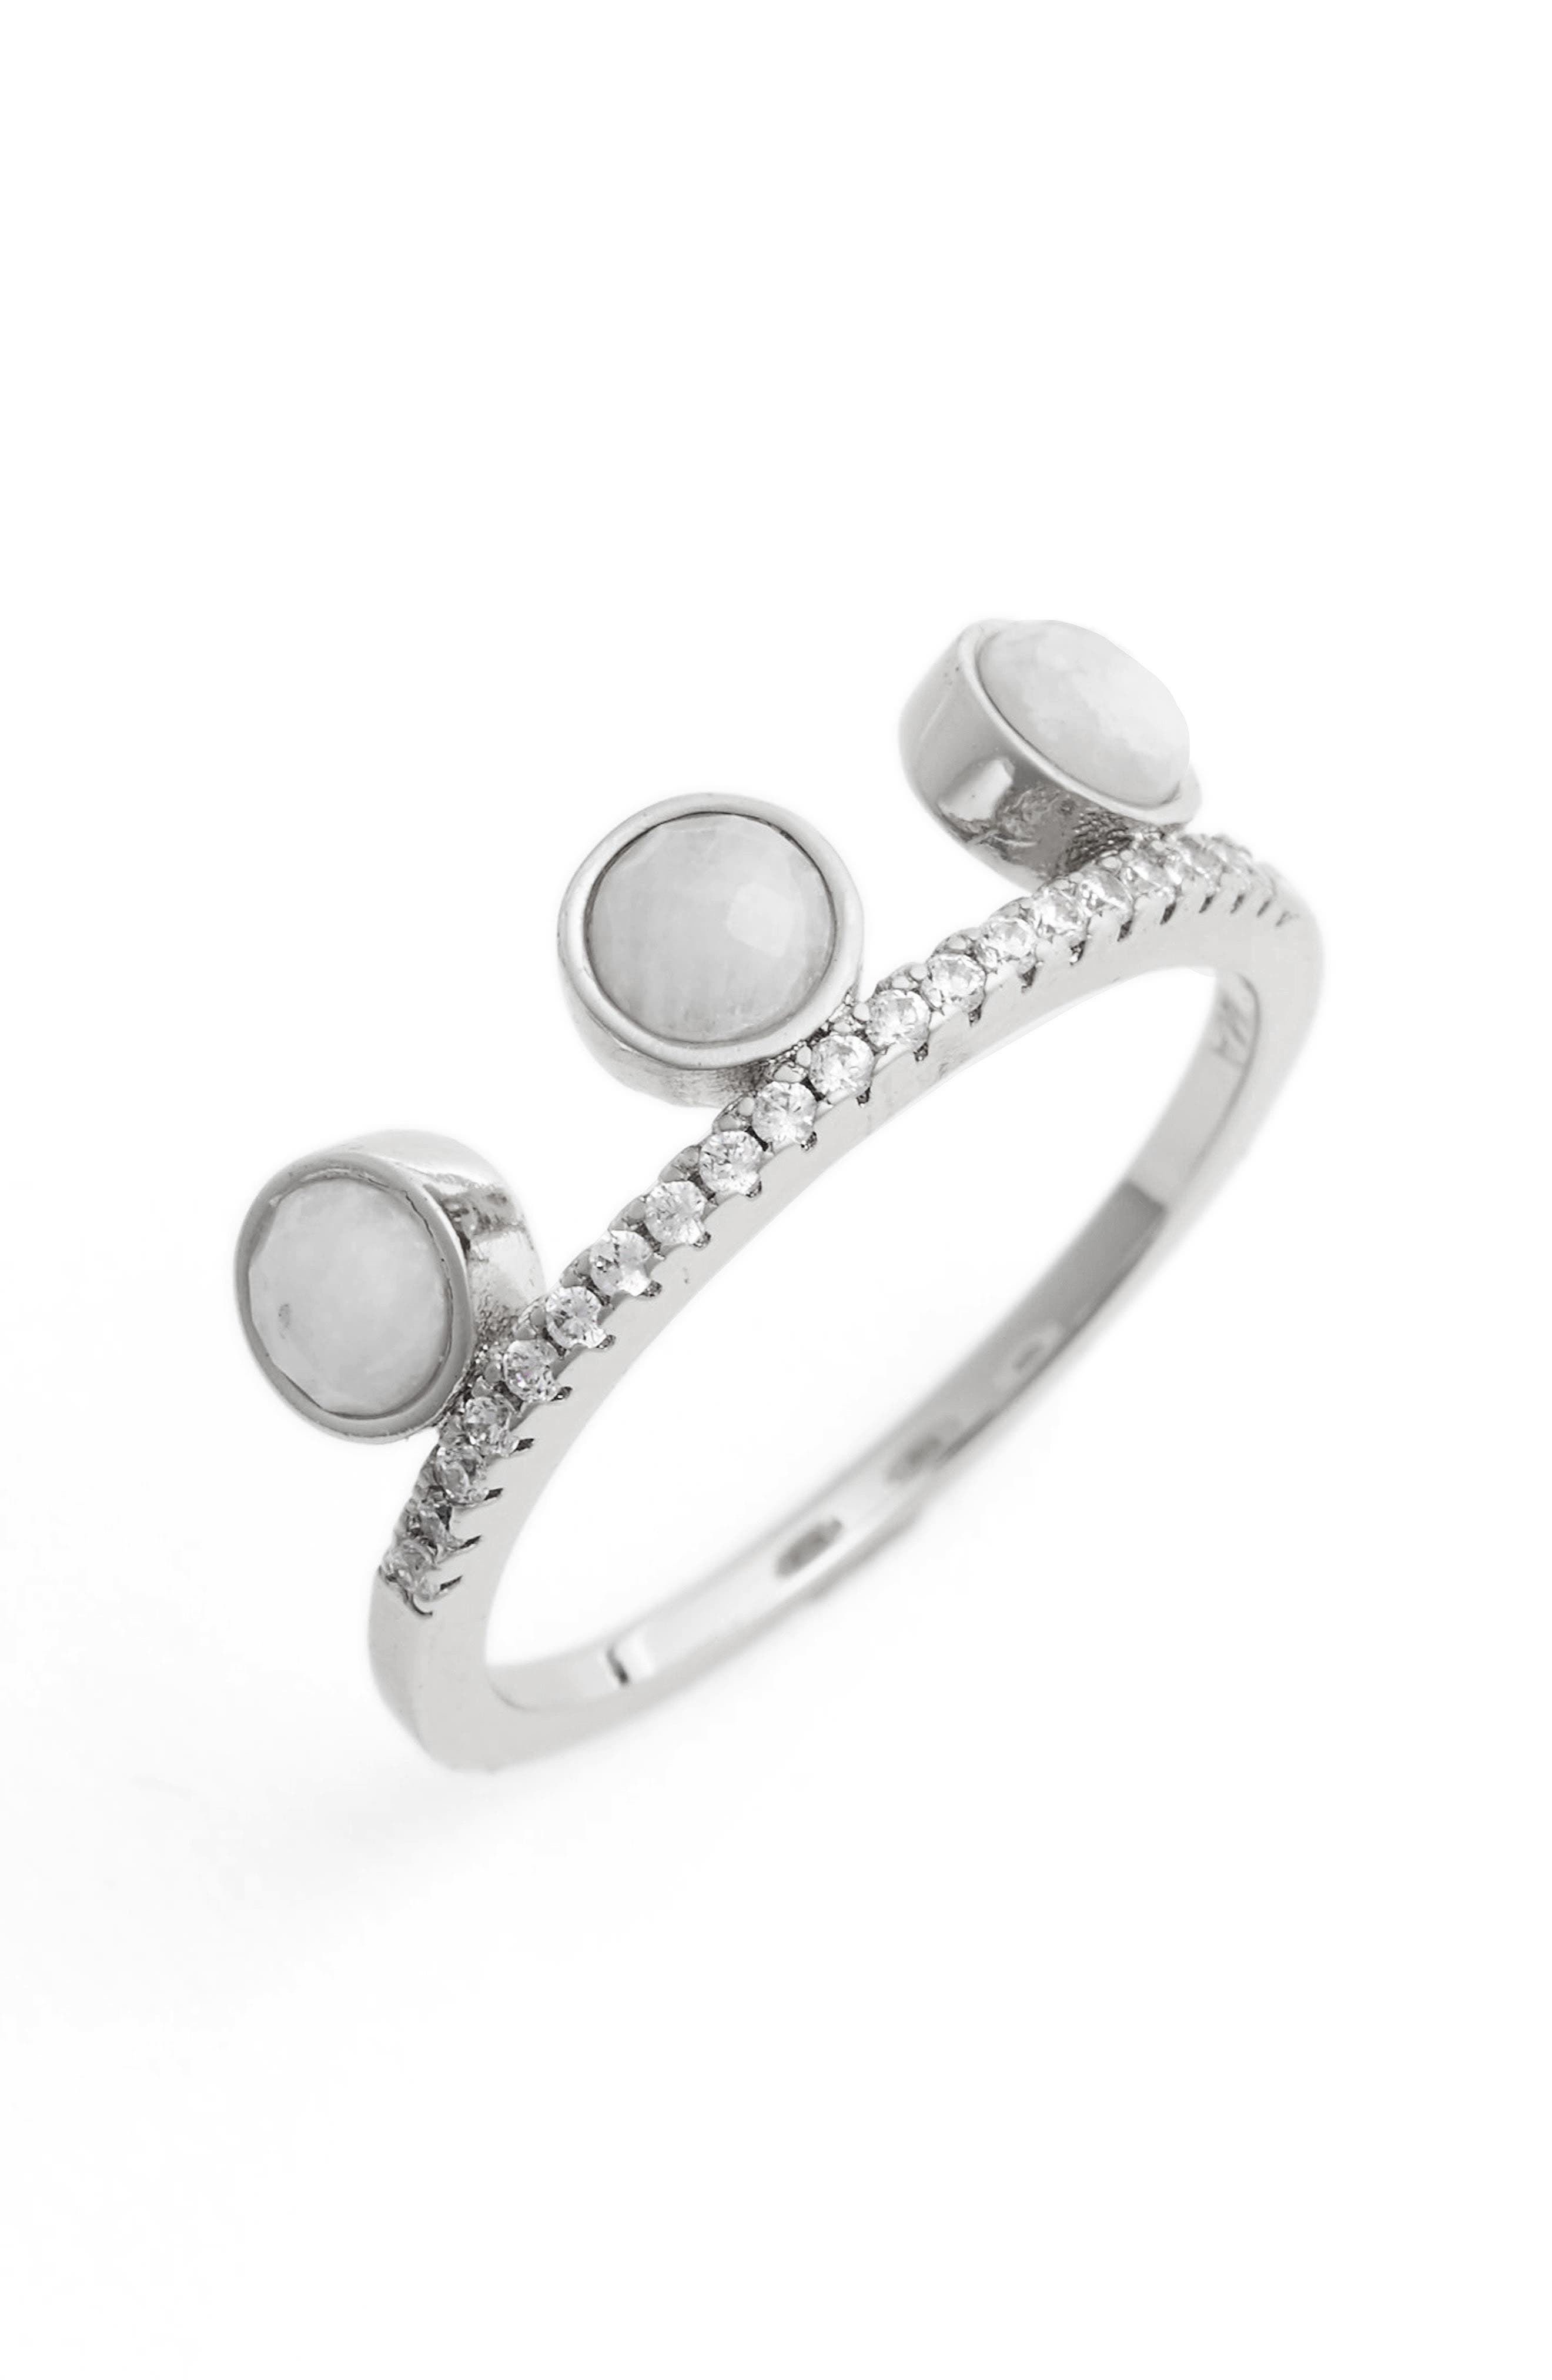 Main Image - Melanie Auld Circle Stacking Ring